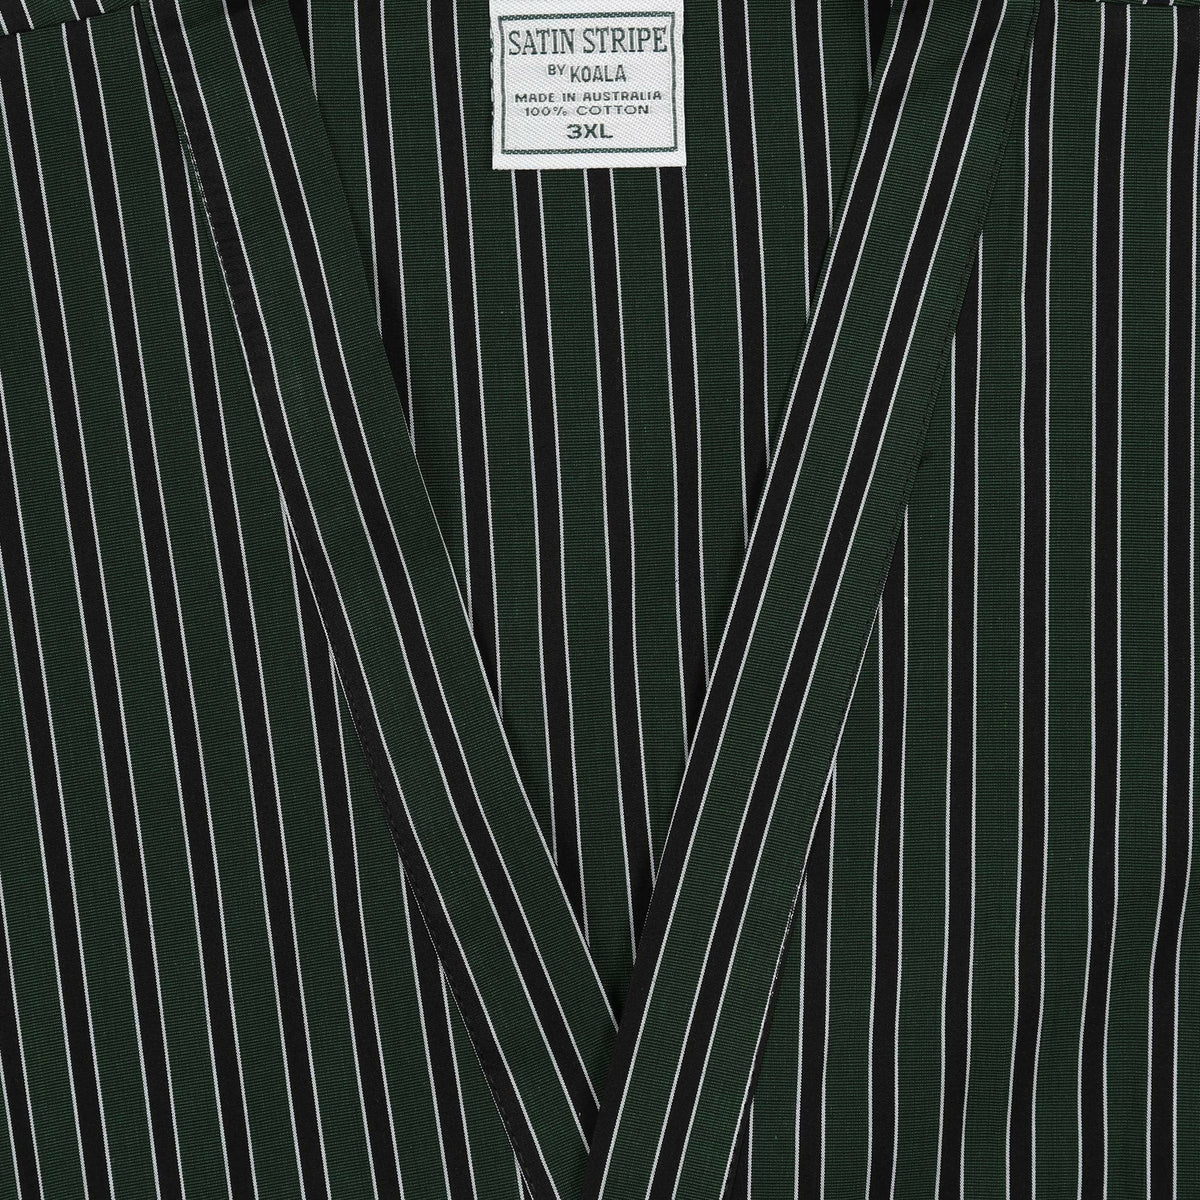 Koala Night Gown in Green Stripe - Ron Bennett Big Men's Clothing - 2